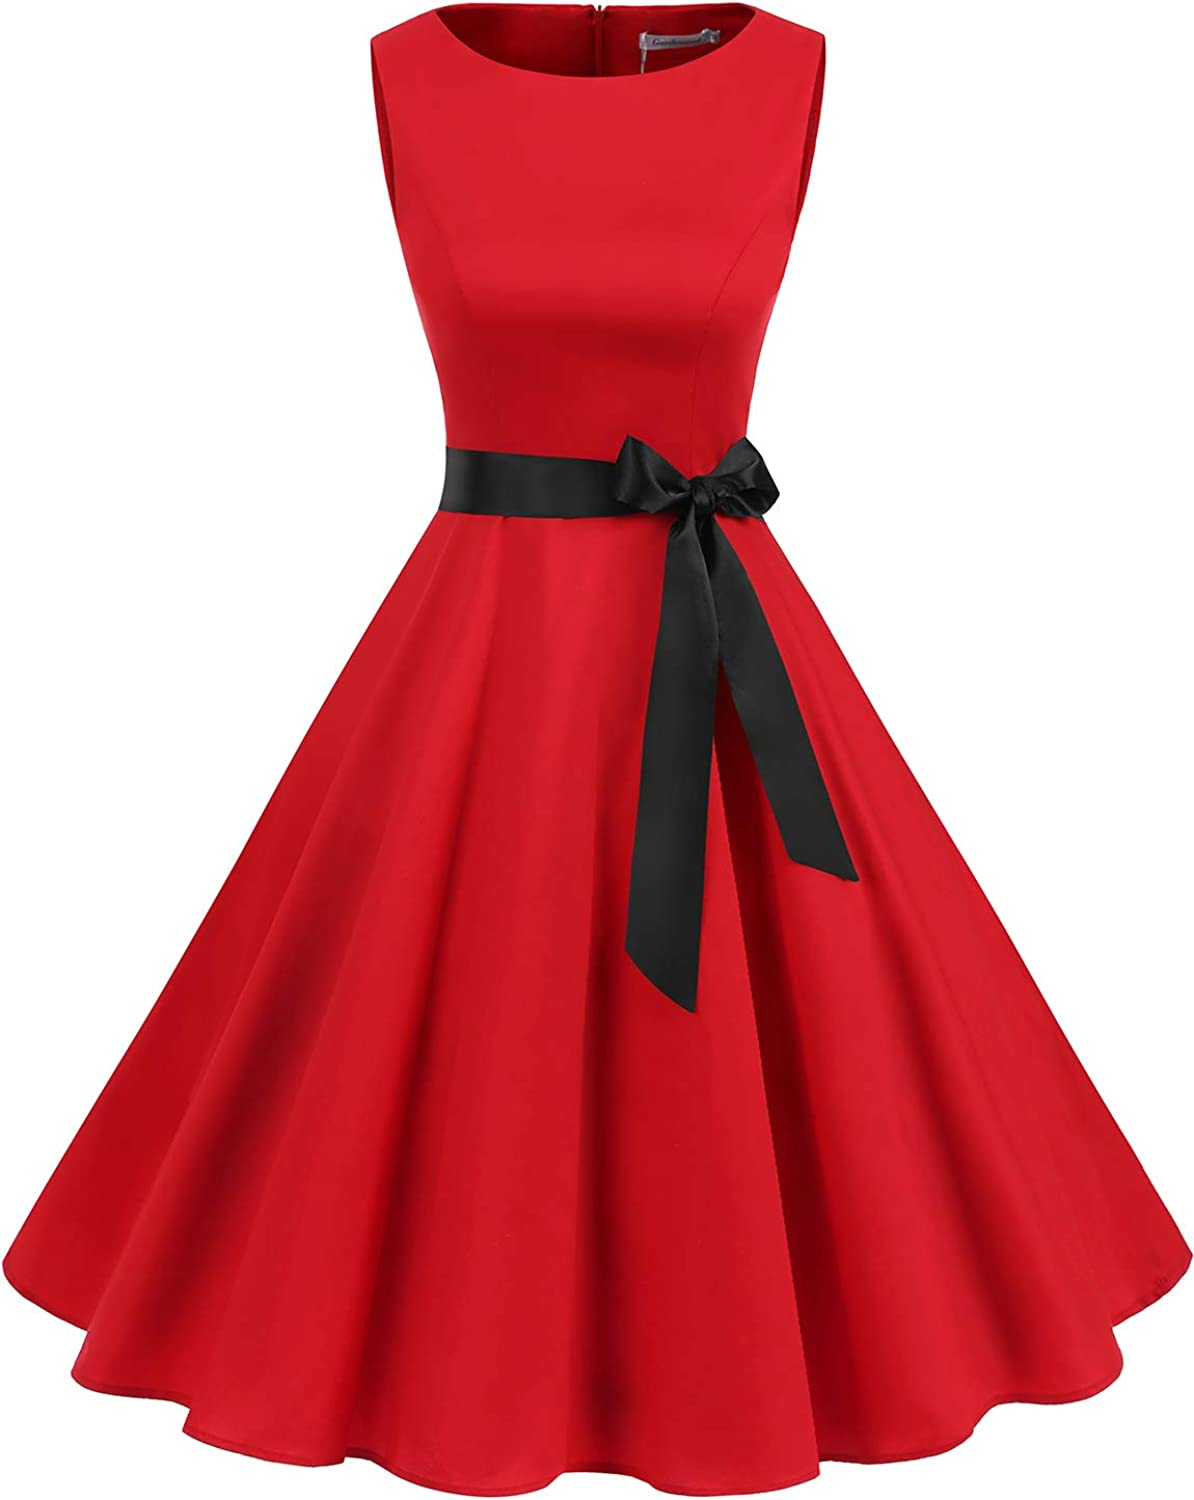 Gardenwed Women's Audrey Hepburn Rockabilly Vintage Dress 1950s Retro Cocktail Swing Party Dress